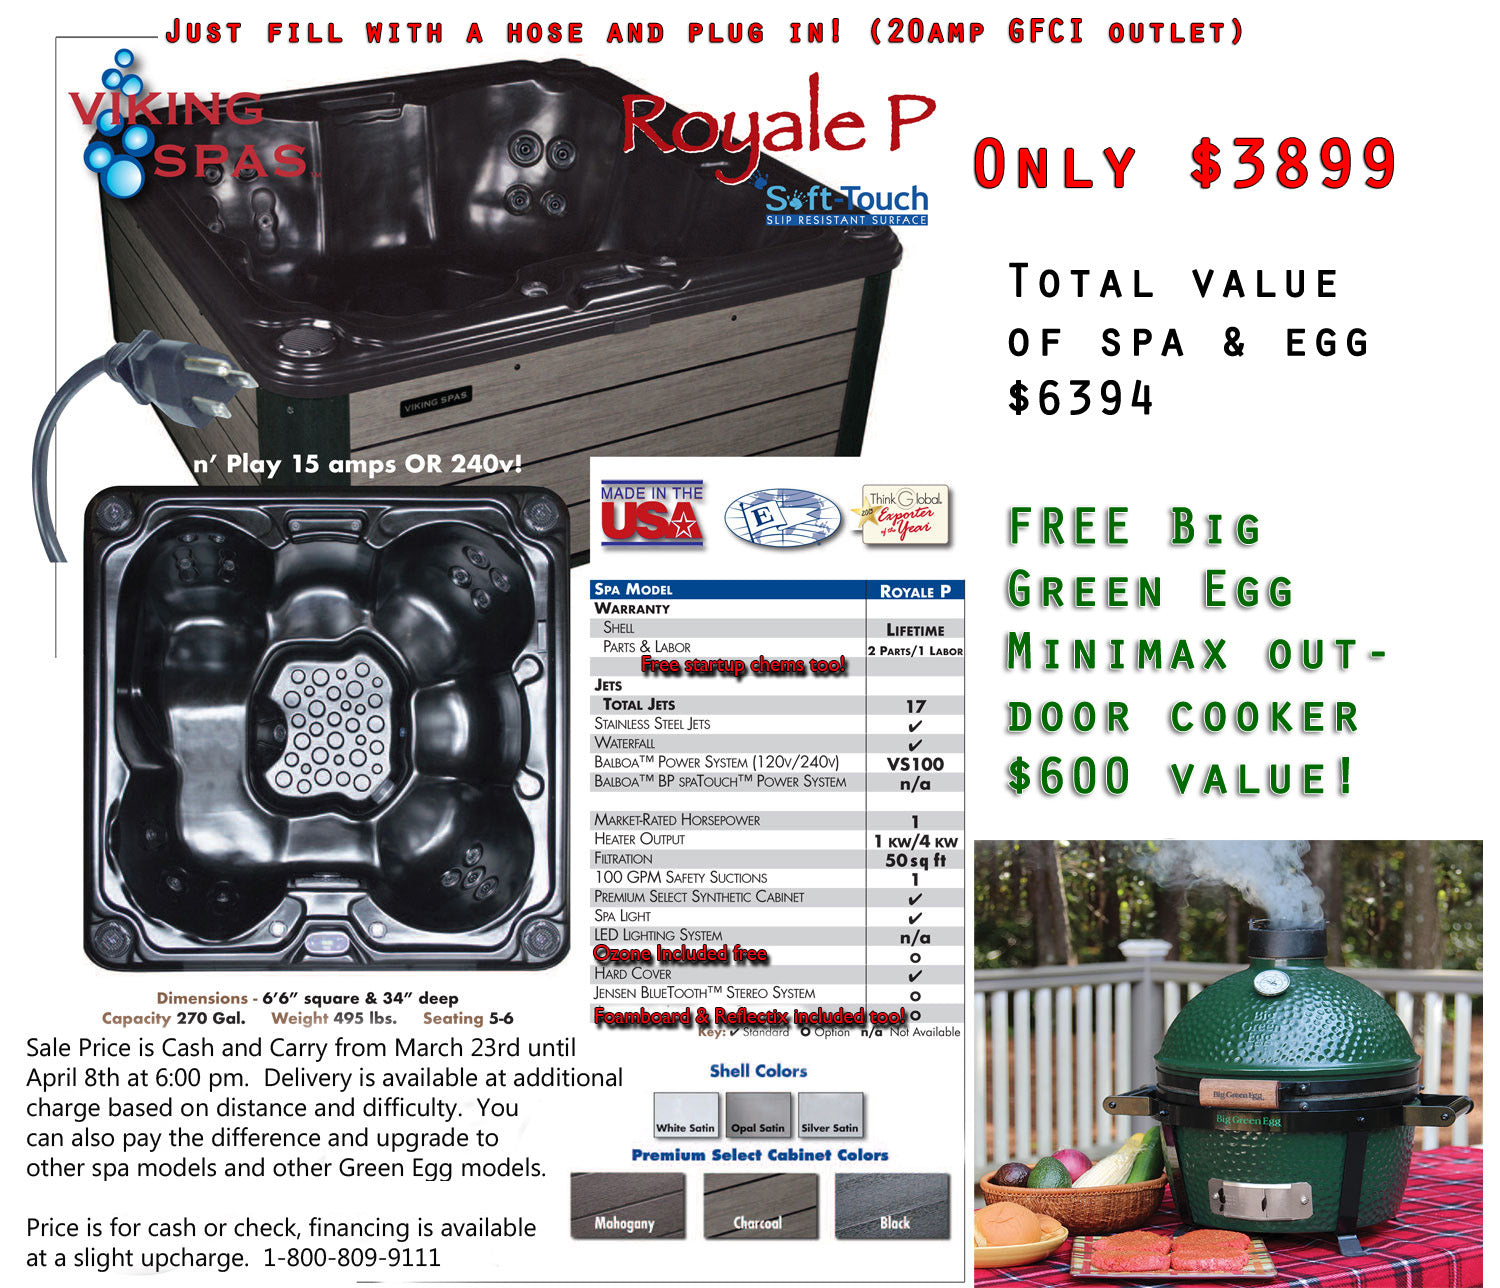 Special $5794.00 Viking Regal P or Royal P for just $3899.00 and get a Free Big Green Egg Minimax!